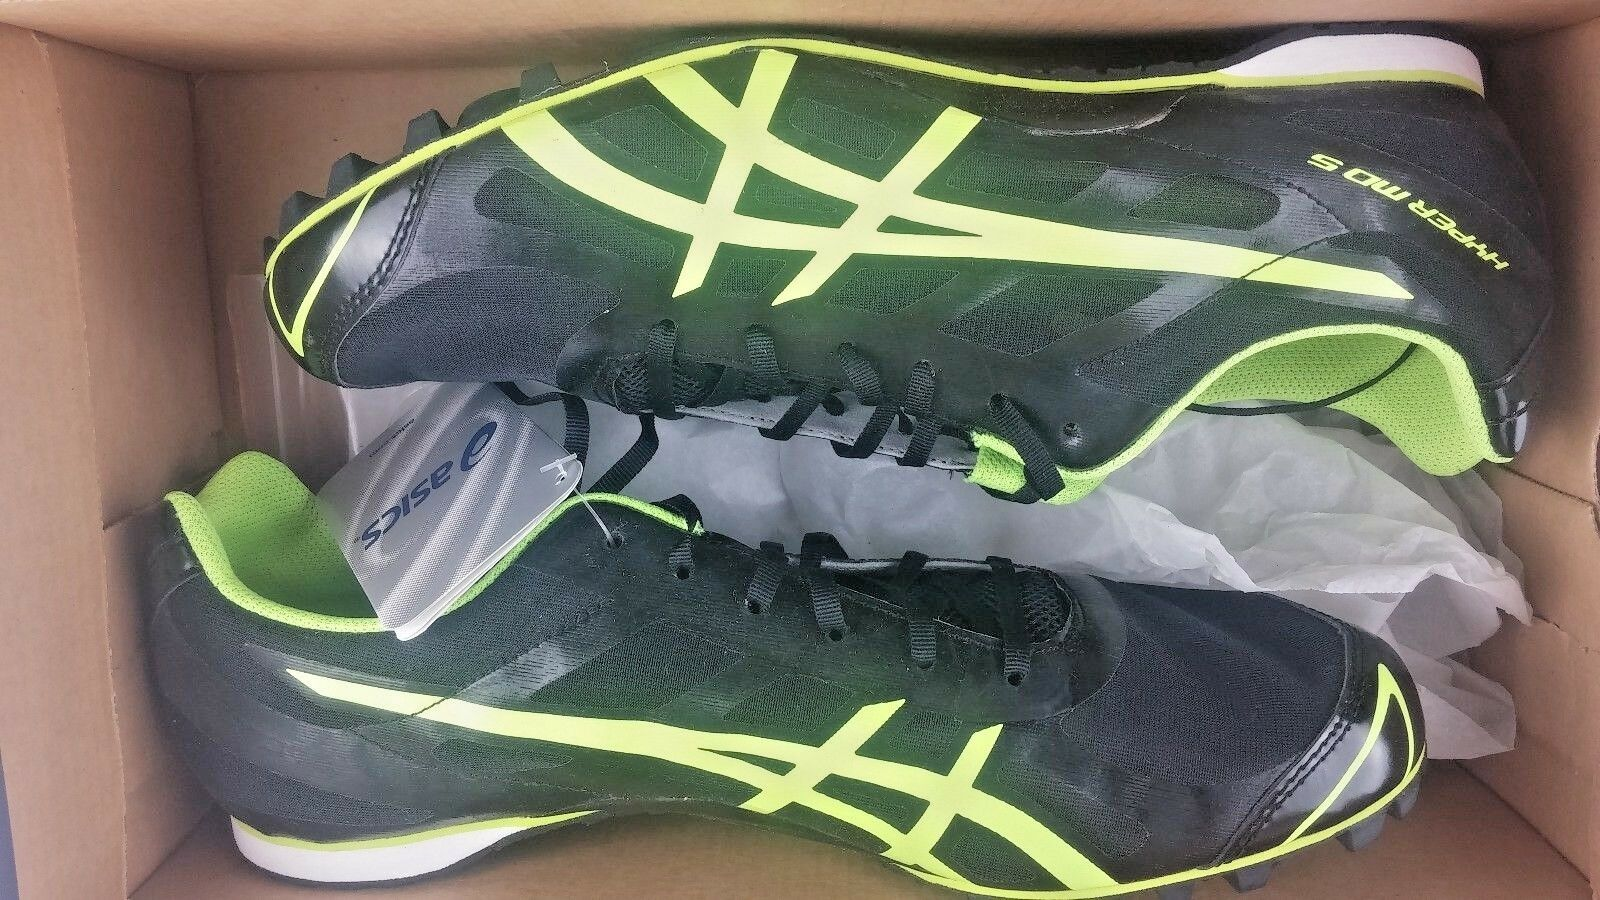 64b87a2a7 NEW Asics Mens 11 Hyper MD 5 G304N 9004 Track Track Track   Field Spikes  Shoe